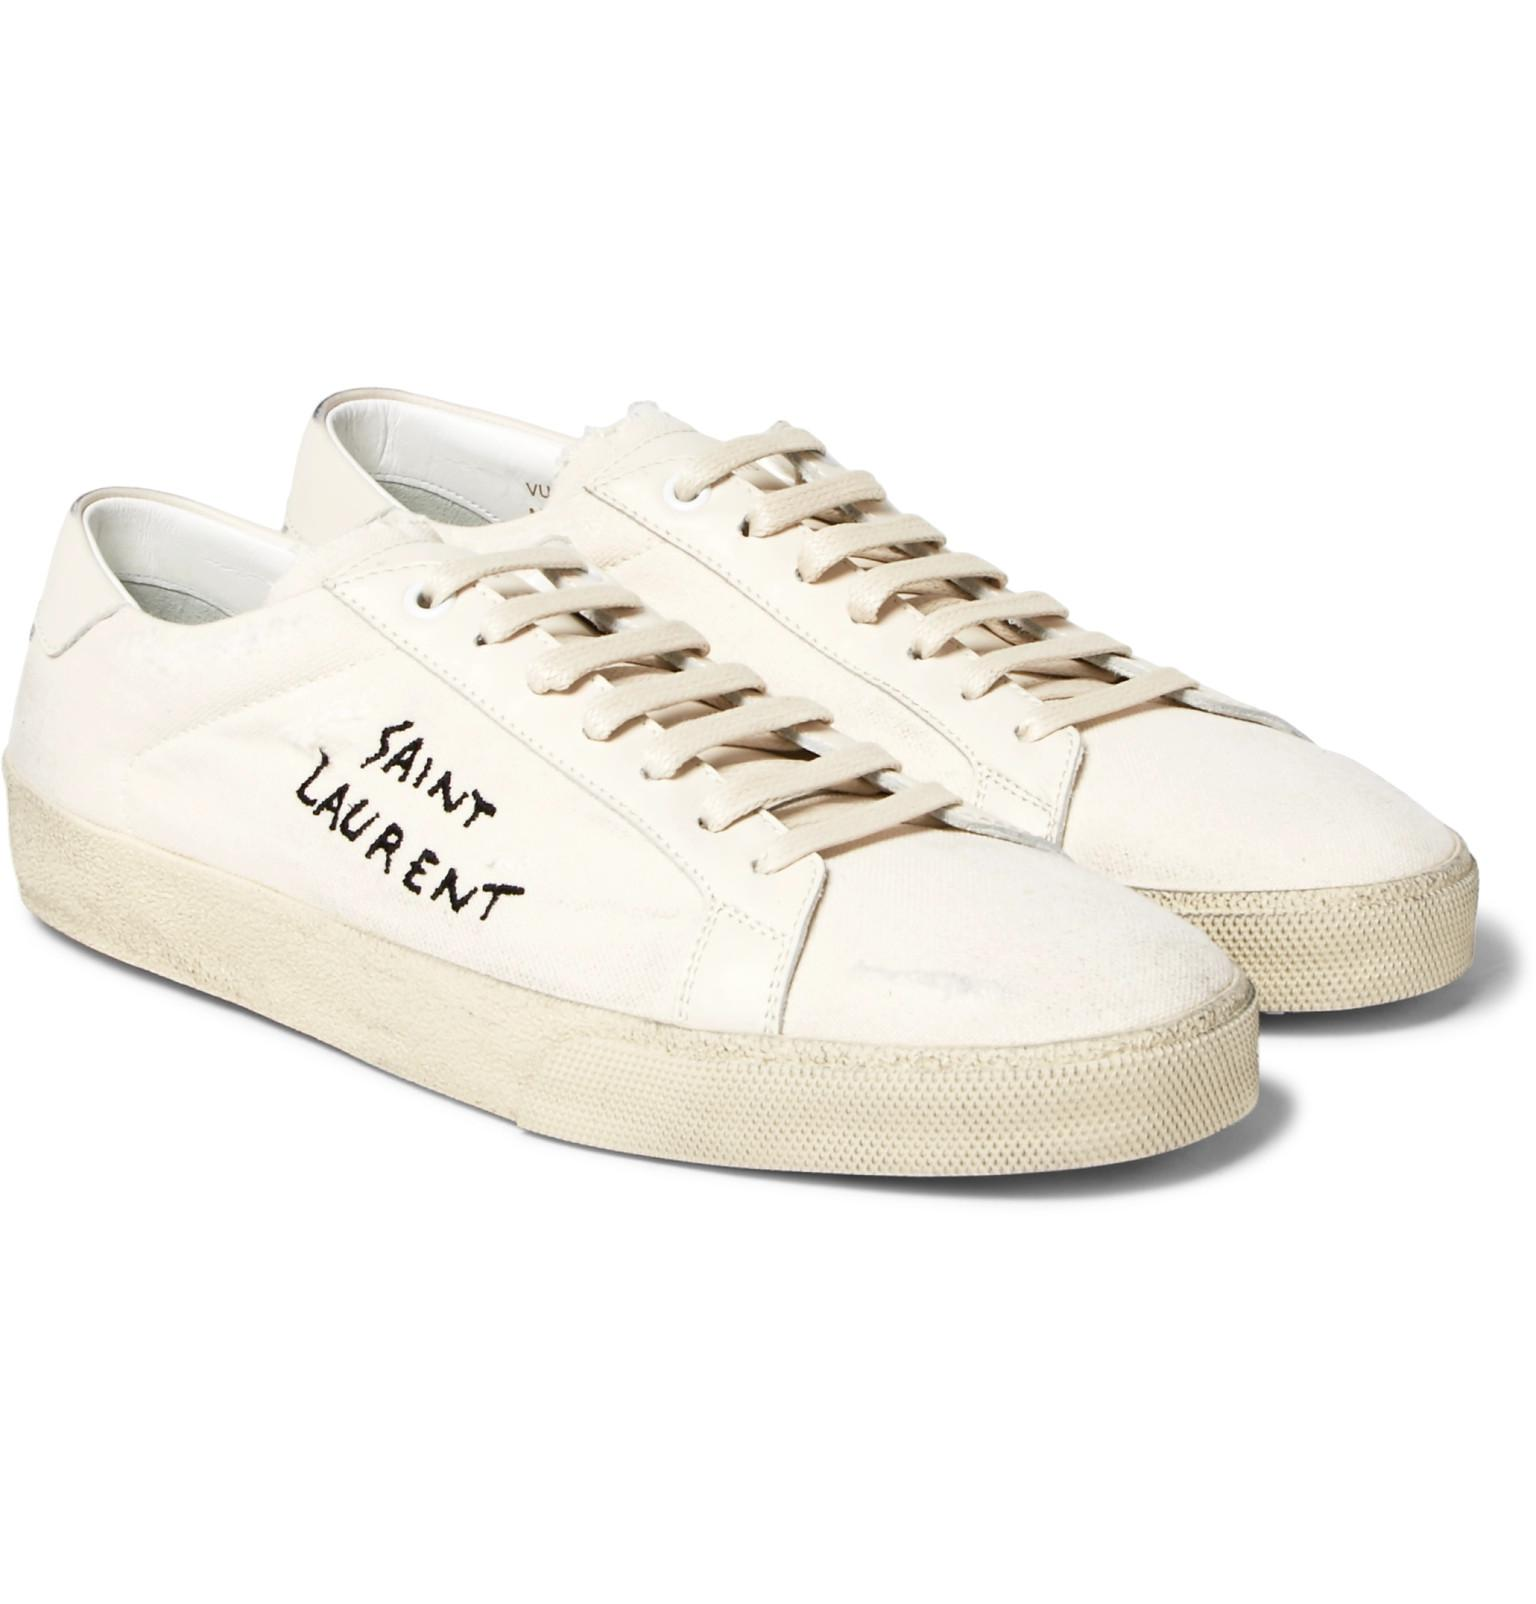 White Distressed Jersey Sneakers Saint Laurent E0EJW